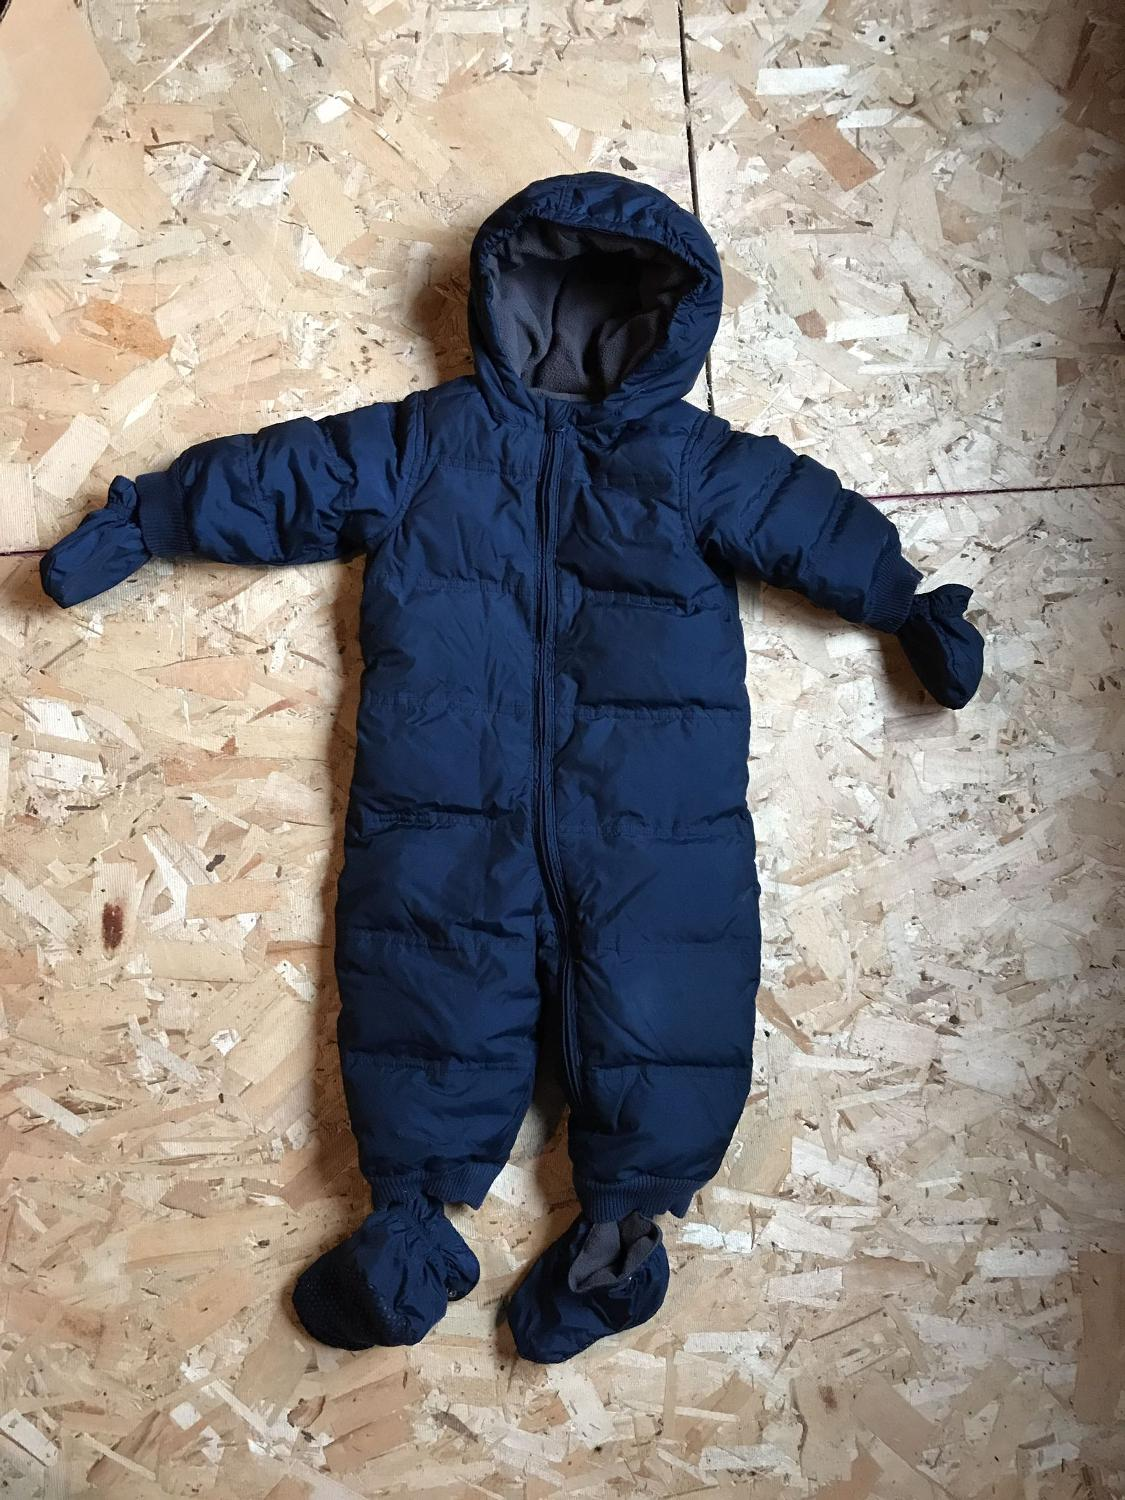 5f58bced7c93 Find more One Piece Down-filled Snowsuit 18-24 Months for sale at up ...